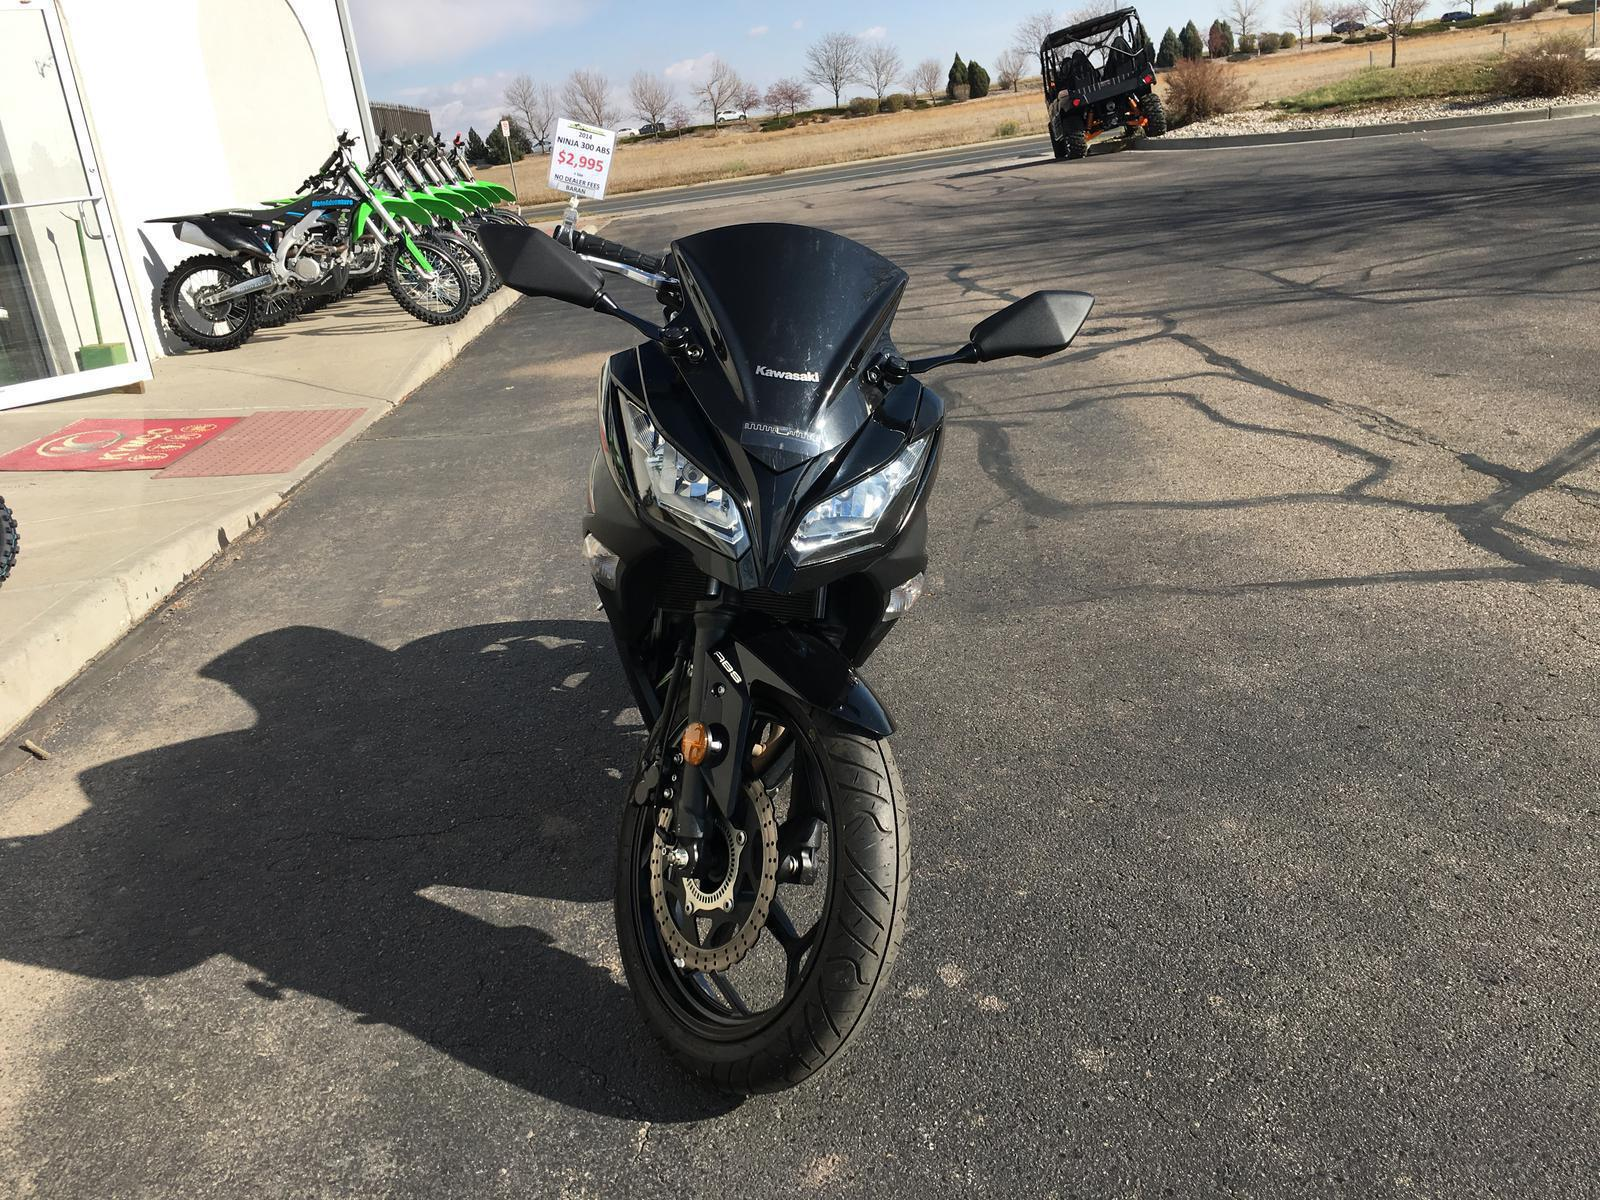 2014 Kawasaki Ninja 300 Abs For Sale In Loveland Co Motoadventure Tarmac Full Exhaust System Carbon Fiber 14 Baran 3